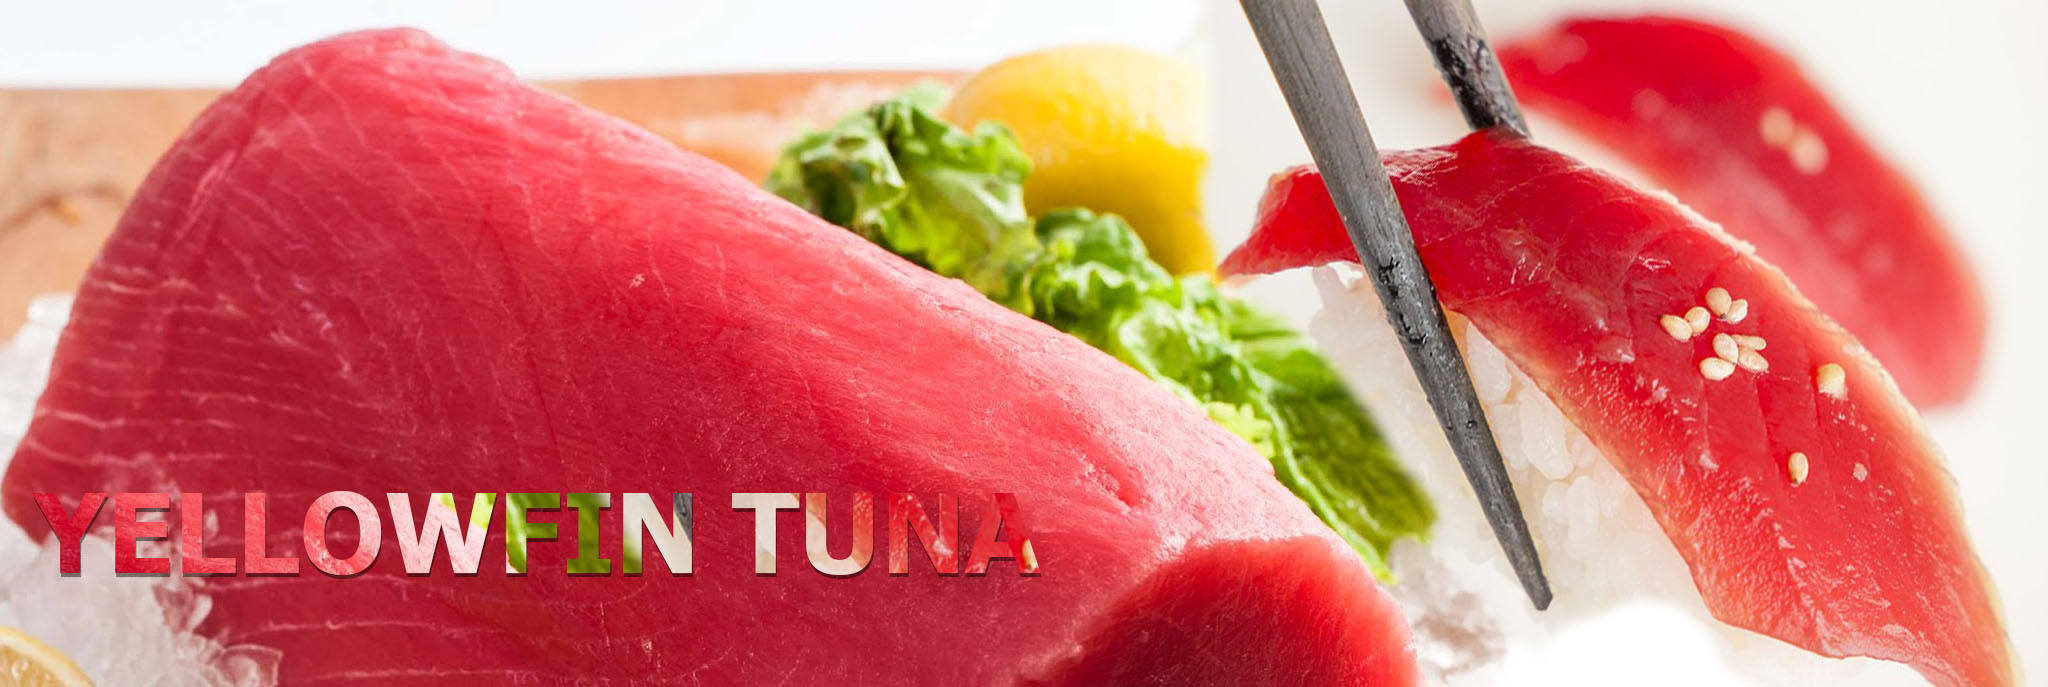 Yellowfin tuna original in vietnam